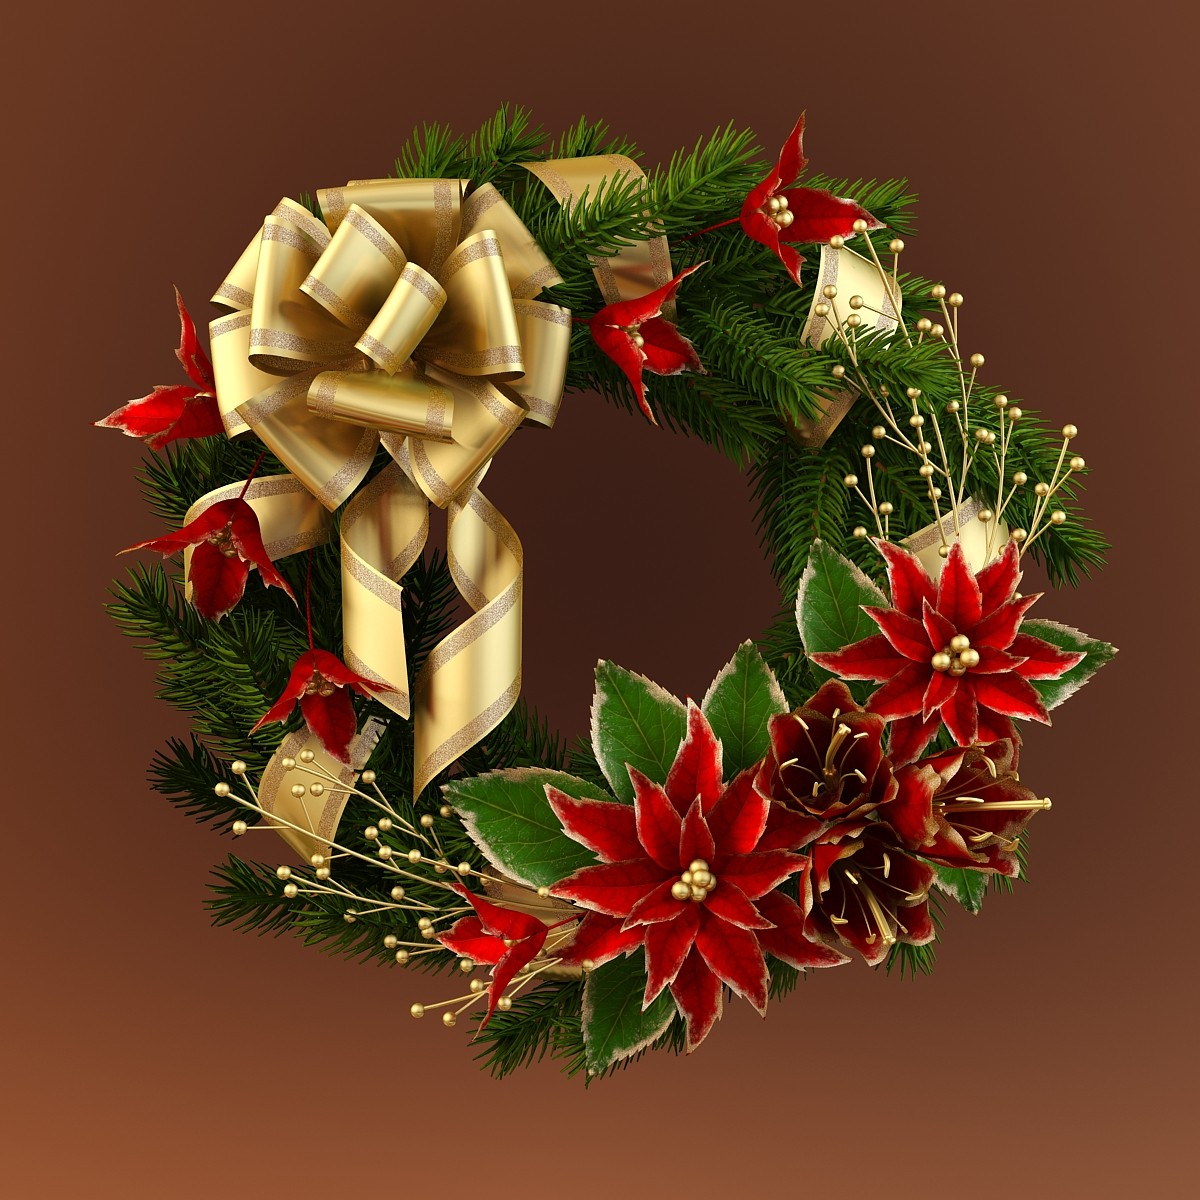 Christmas wreath3_1.jpg